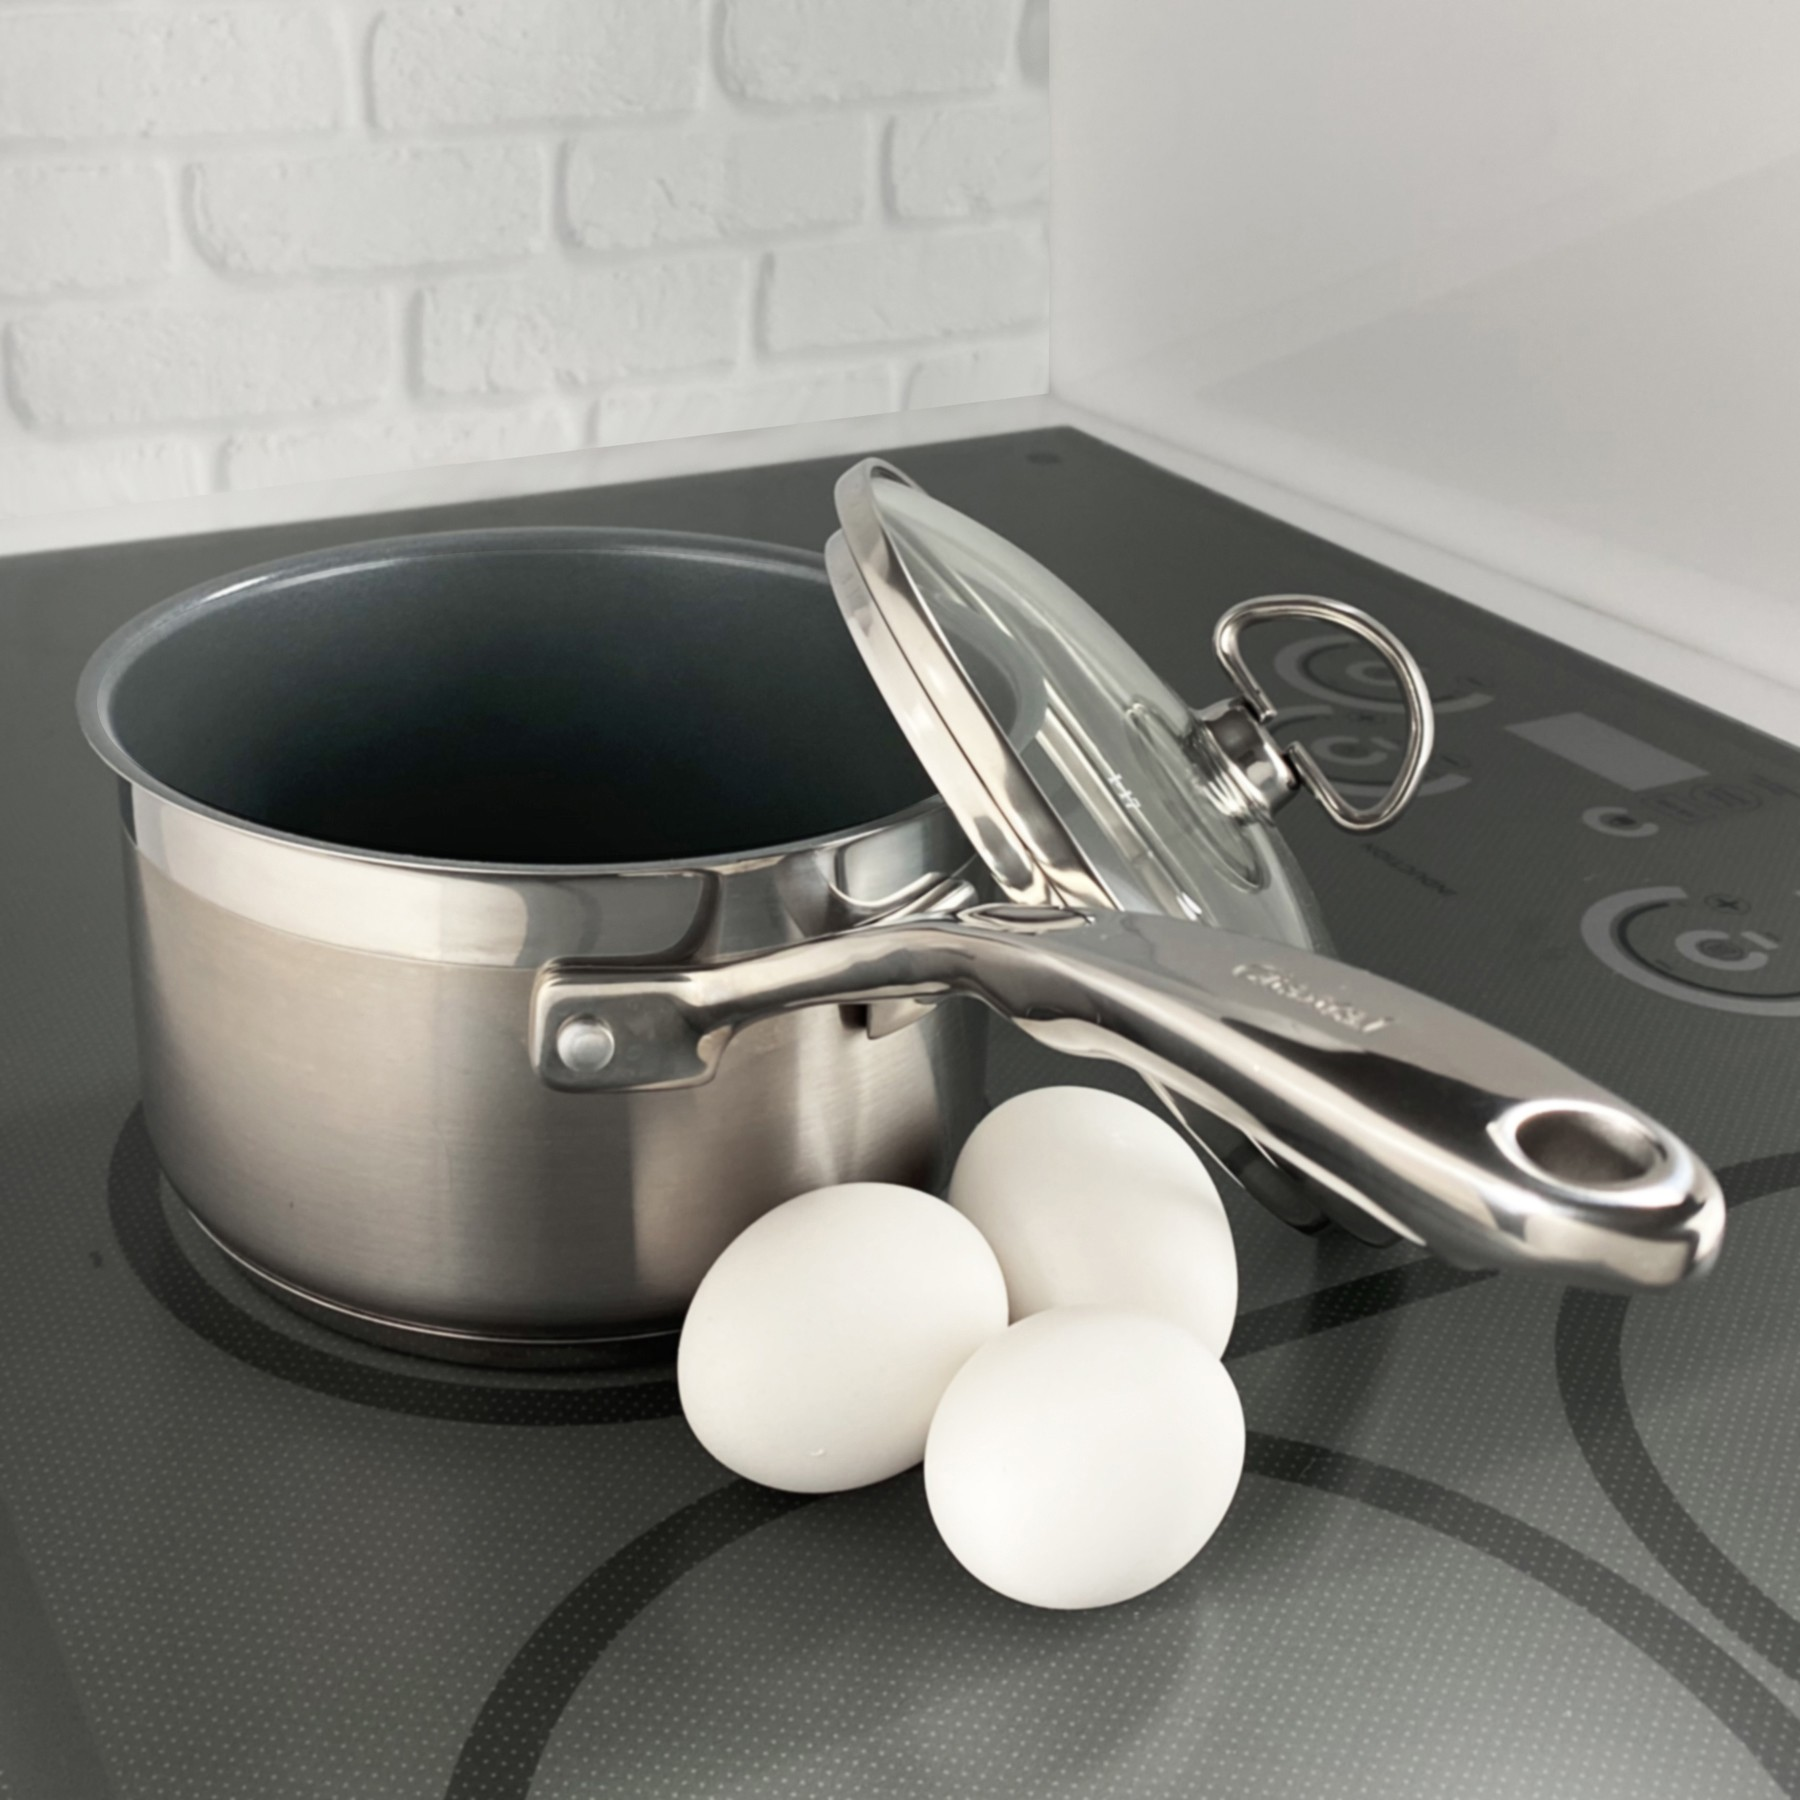 Stainless Steel saucepan chantal induction 21 steel collection premium no nickel non-toxic cookware 2 quart capacity with glass lid brushed exterior image showing pan on cooktop with eggs